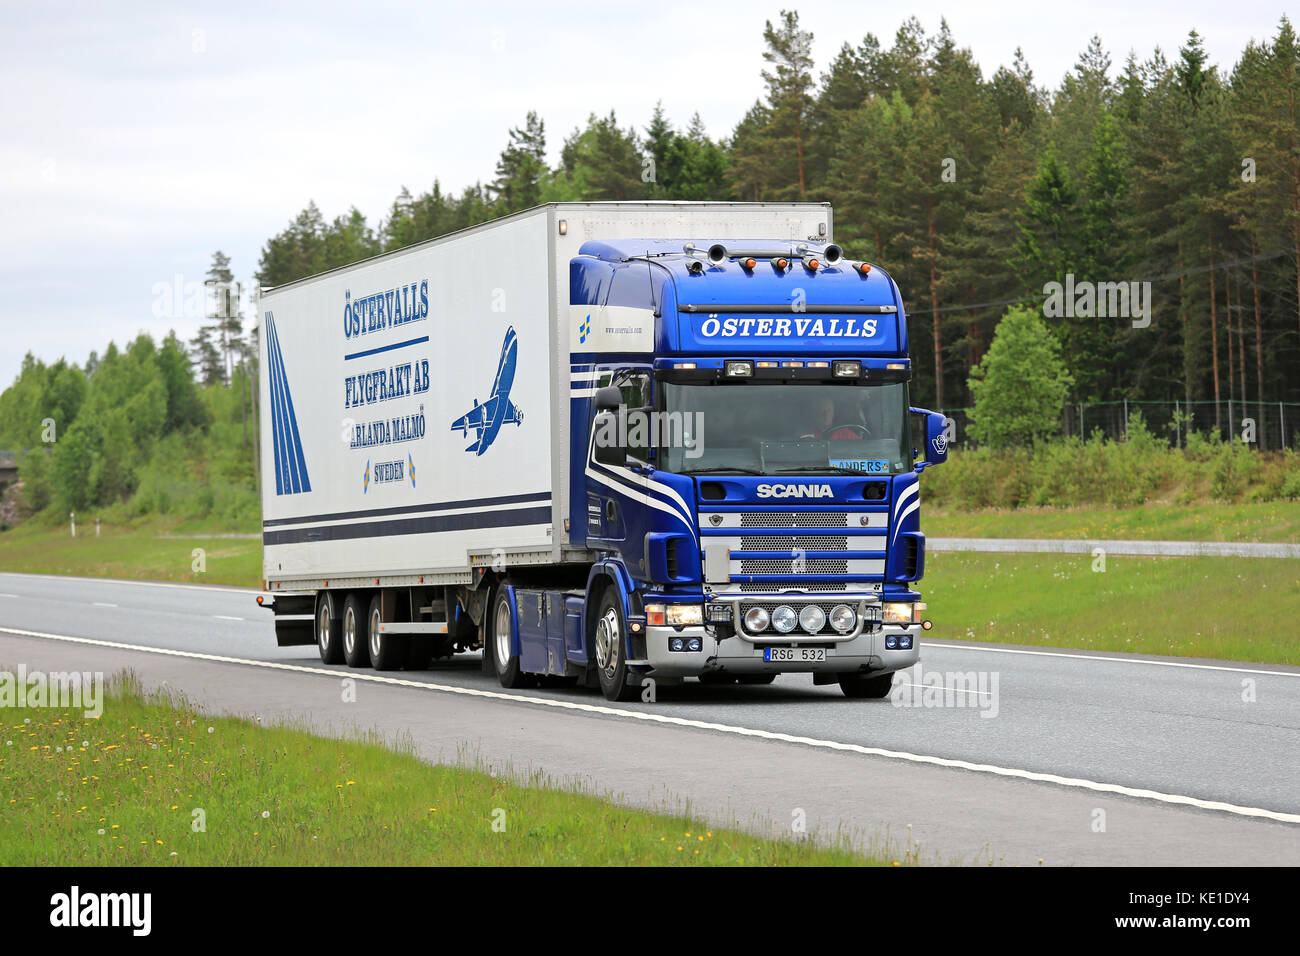 SALO, FINLAND - MAY 29, 2016: Blue and white Scania 164 v8 semi truck trucking along freeway in South of Finland. - Stock Image